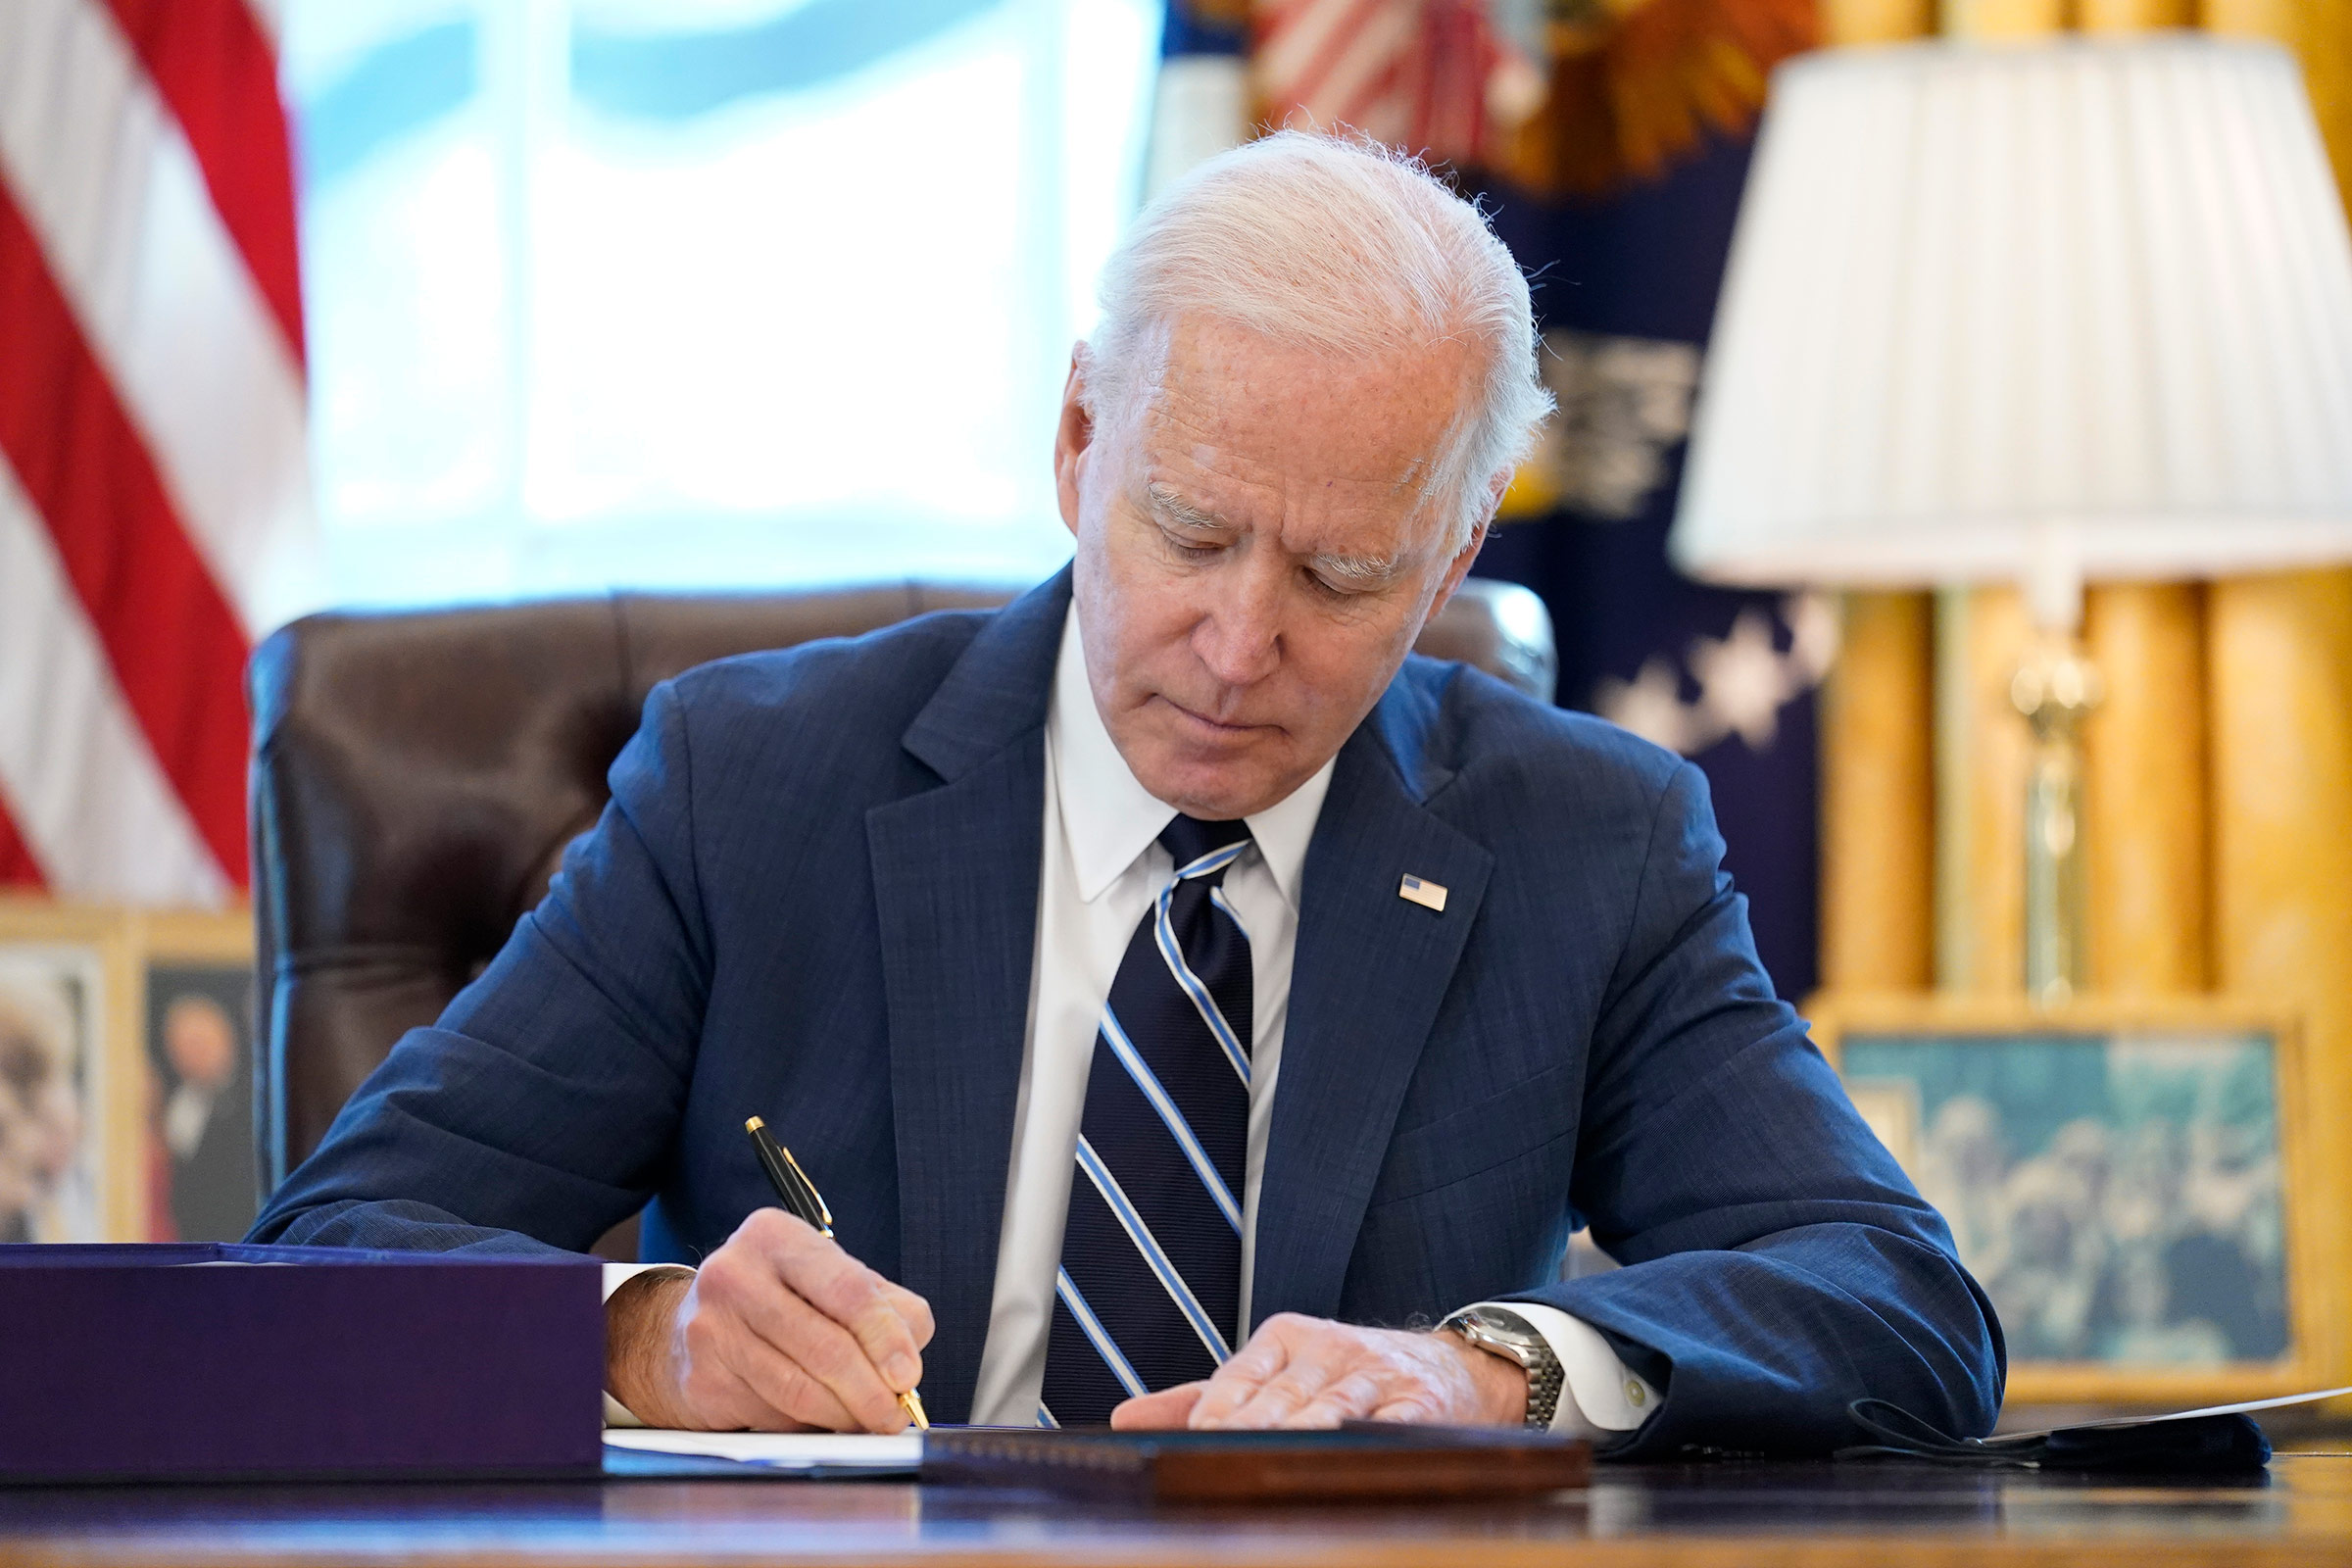 President Joe Biden signs the American Rescue Plan in the Oval Office of the White House on March 11, in Washington, DC.